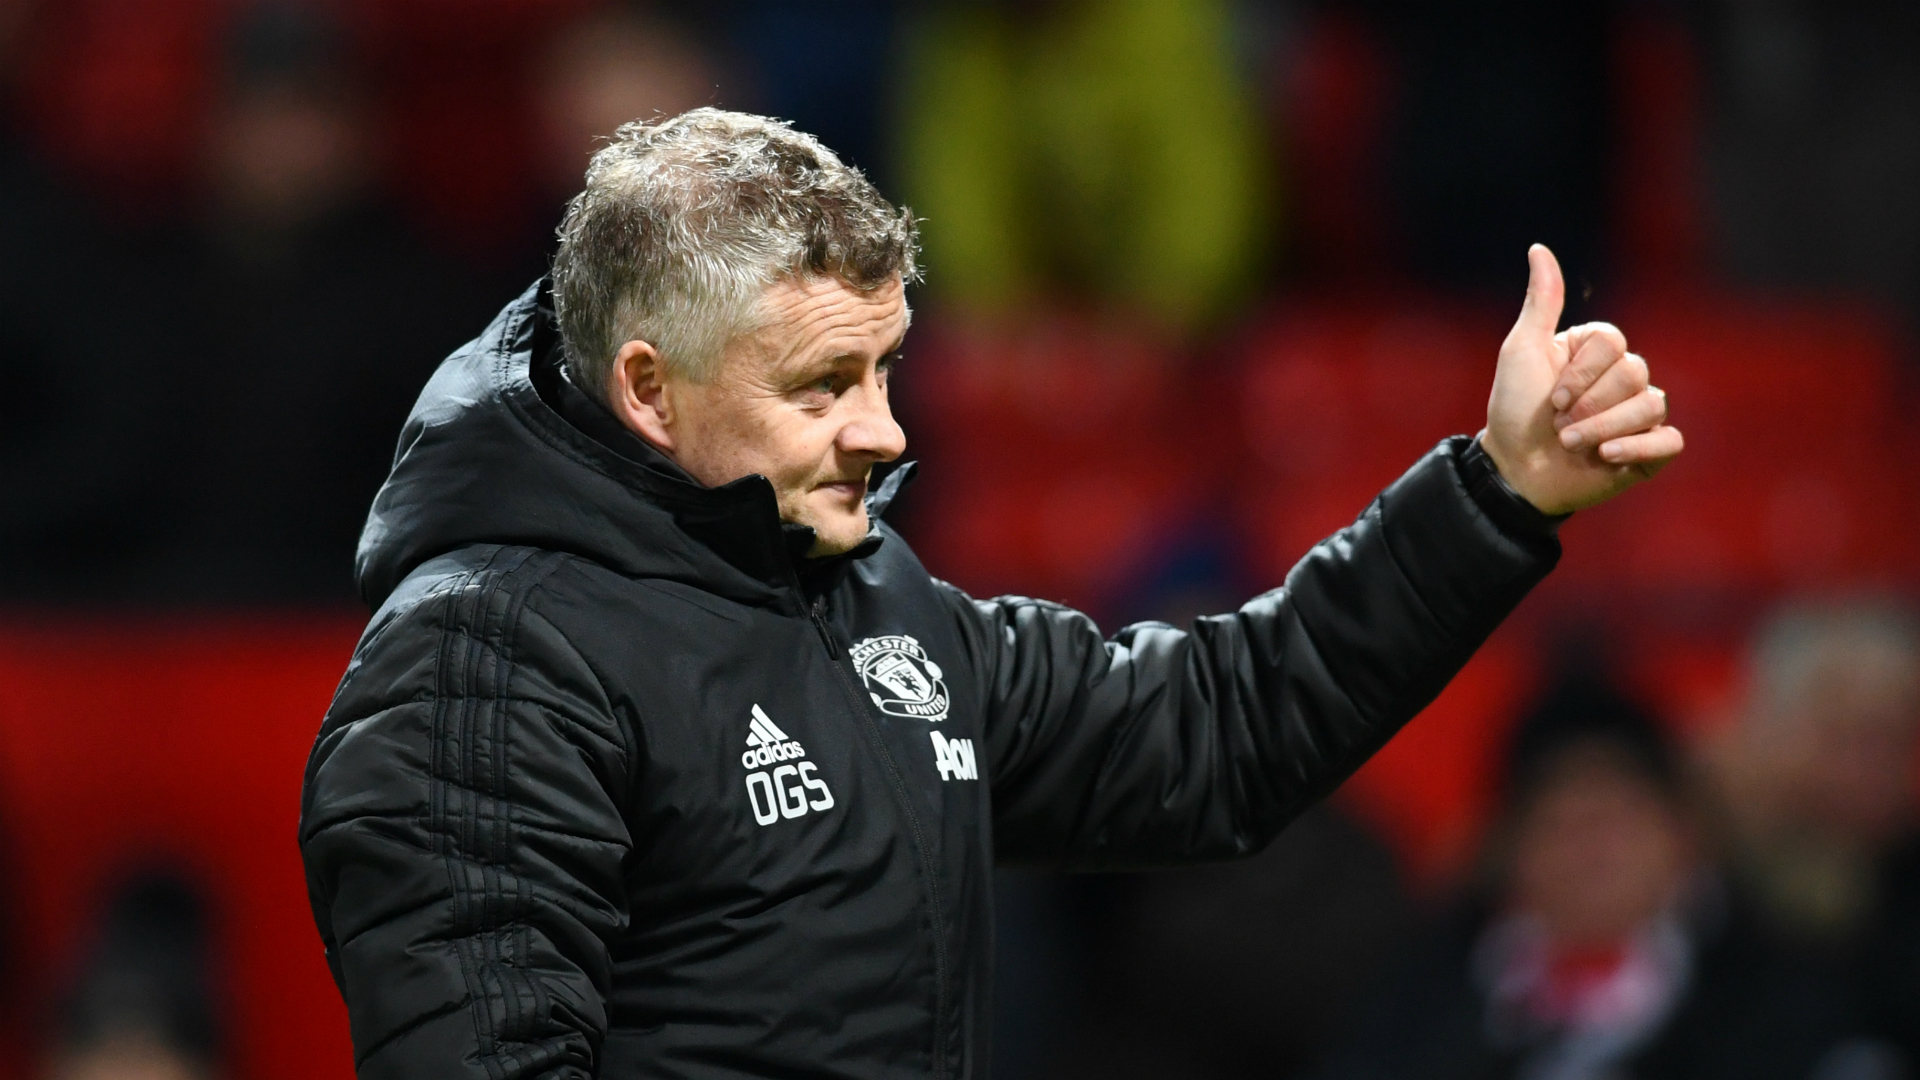 Man Utd want to get to Liverpool's level, admits Solskjaer